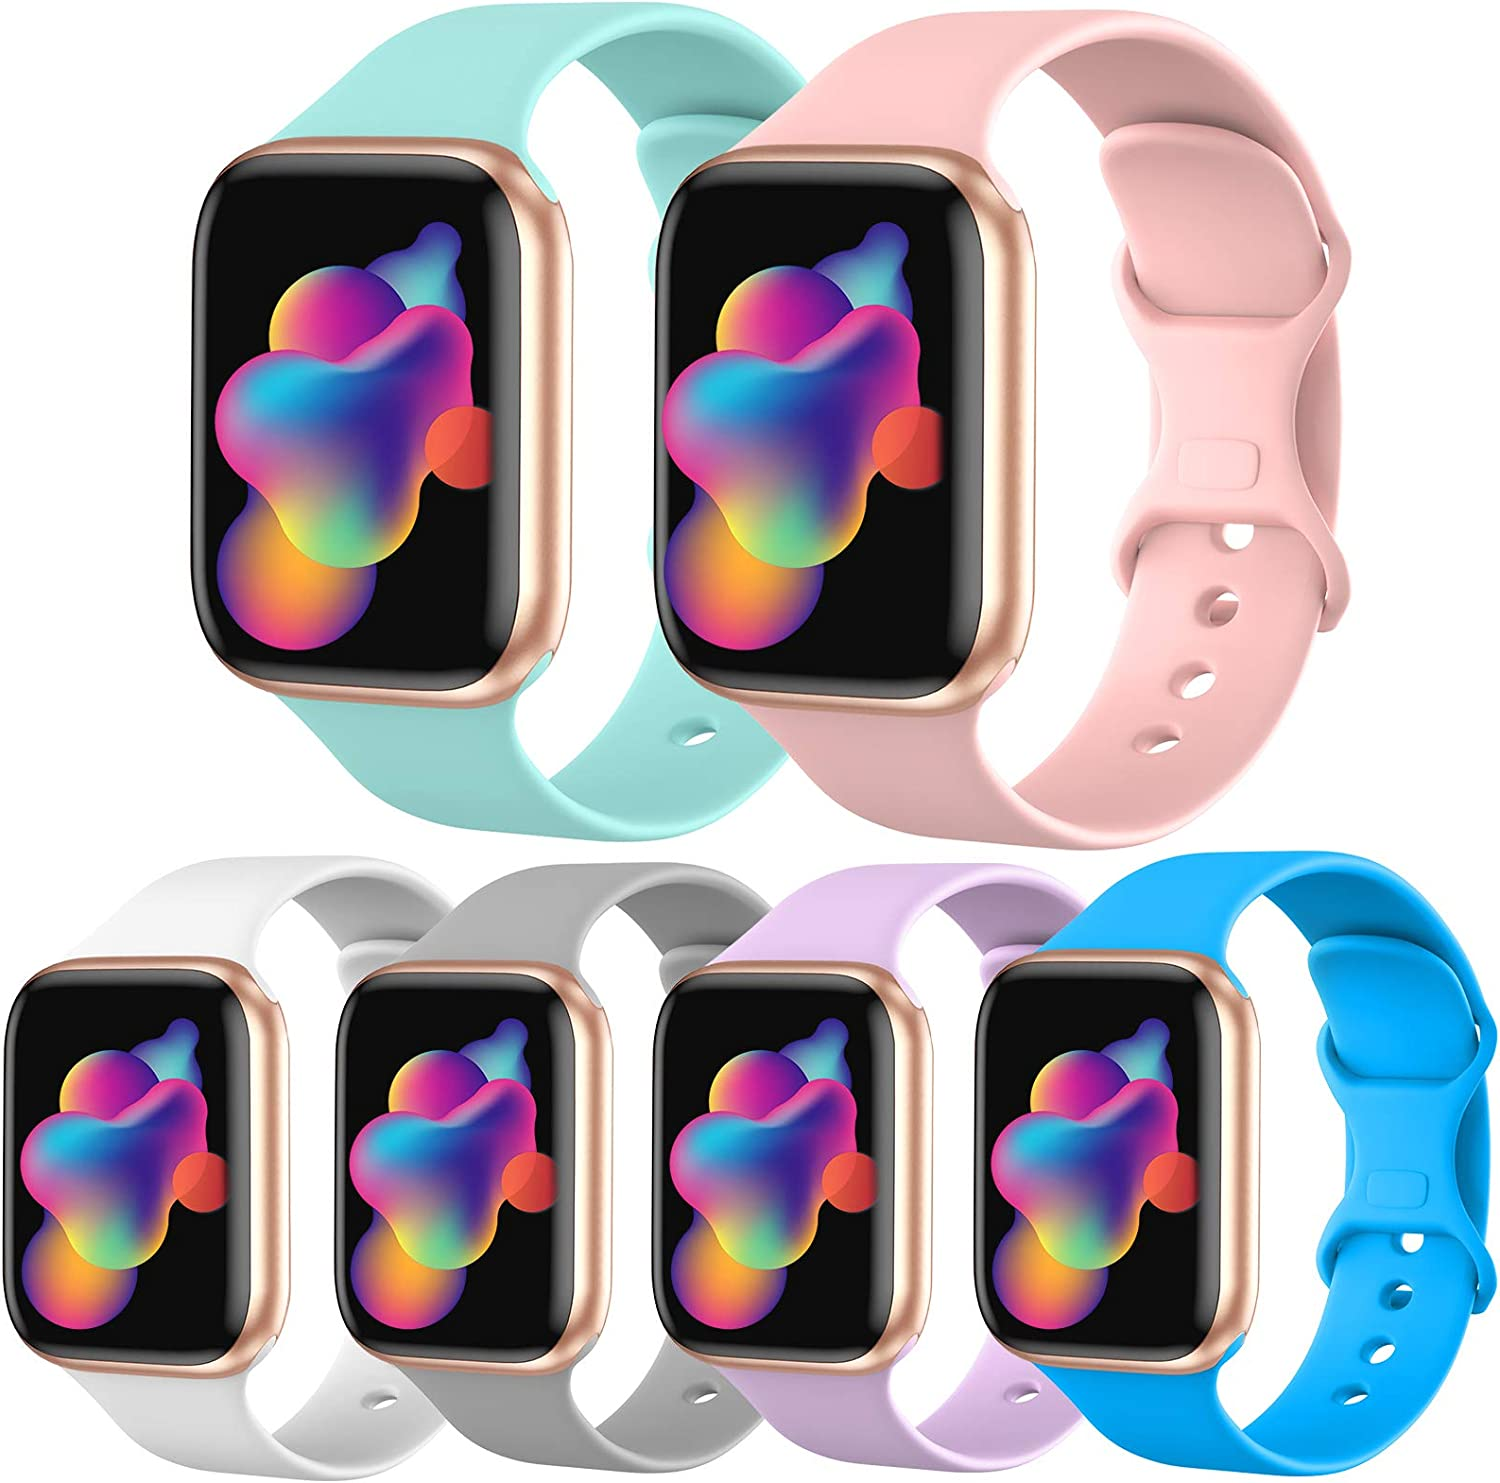 [6 Pack] OriBear Sport Band Compatible with Apple Watch Band 38mm 40mm, Durable Soft Silicone Replacement Strap for iWatch Band 6/5/4/3/2/1 for Women Men Kids S/M Pack D